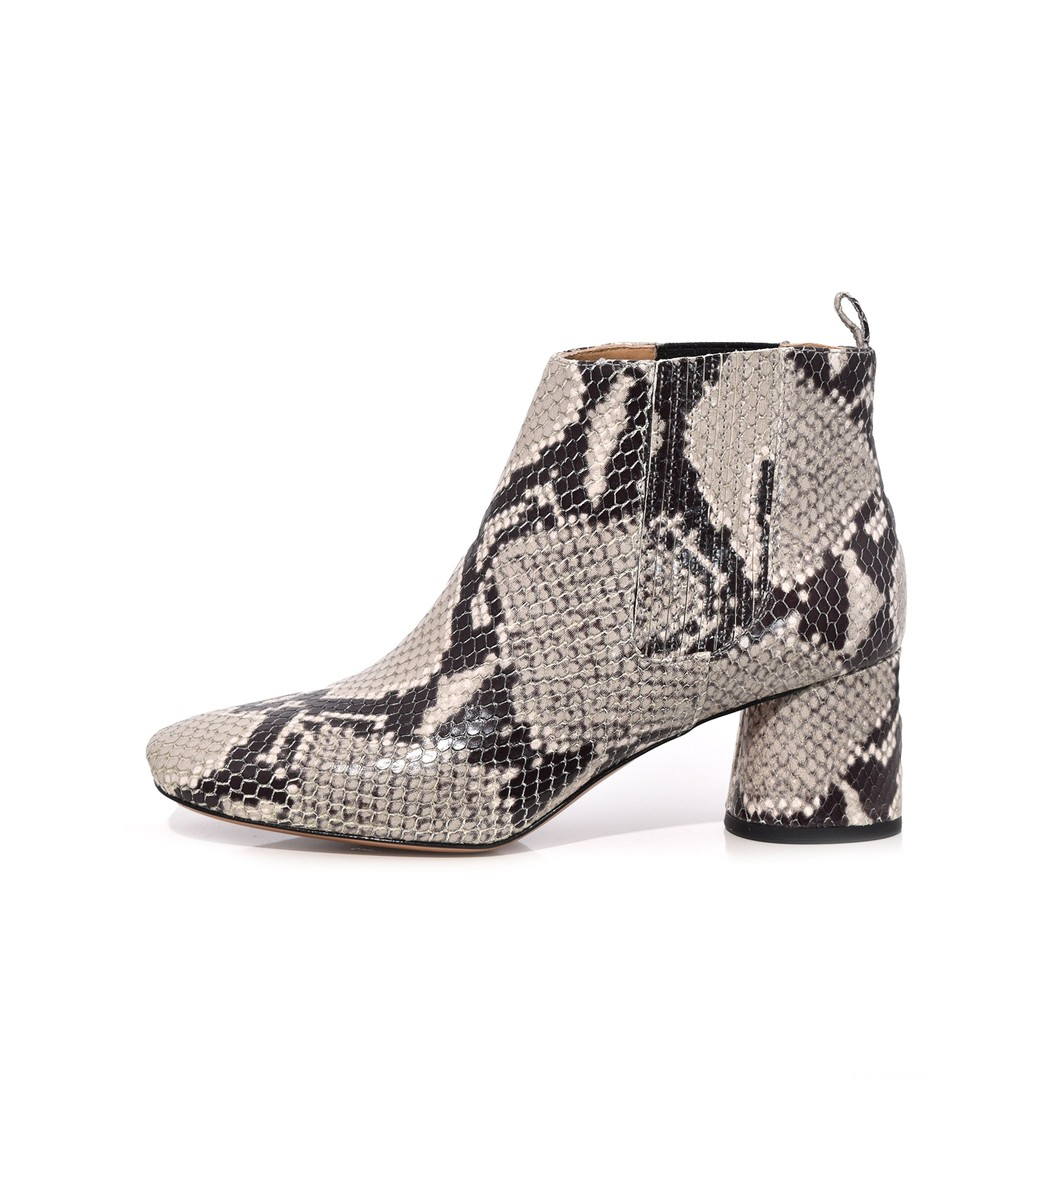 WOMEN'S ROCKET SNAKE-EMBOSSED LEATHER ROUND BLOCK HEEL CHELSEA BOOTIES